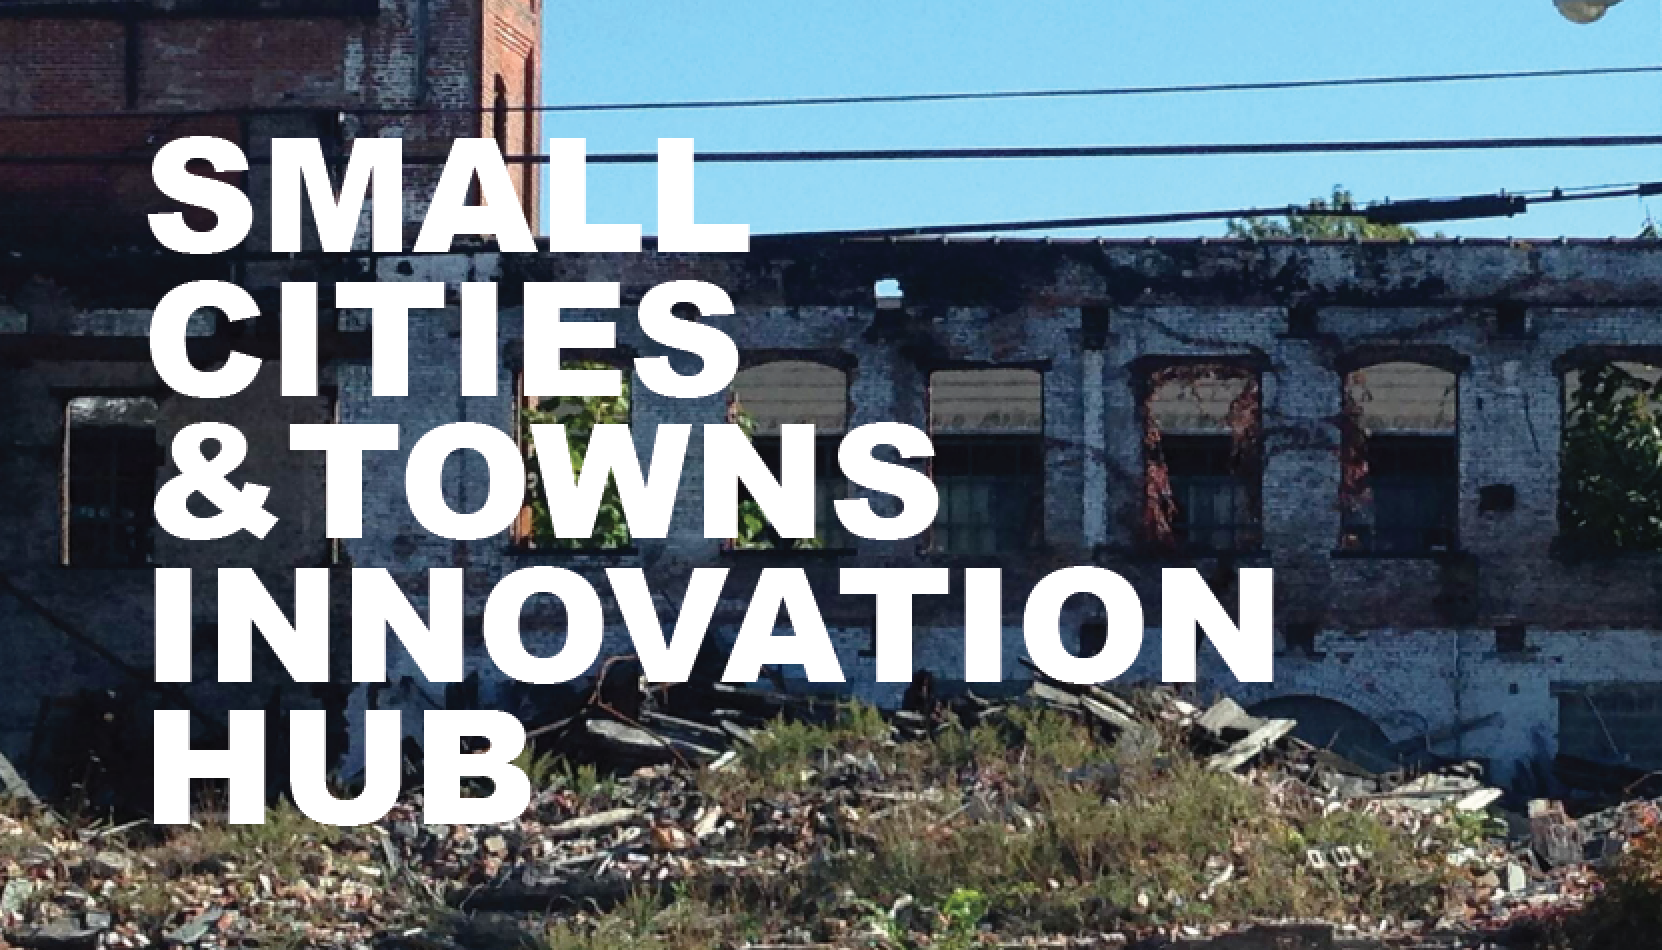 WE NEED TO RE-INVENT WORK IN THE SMALL TOWN.